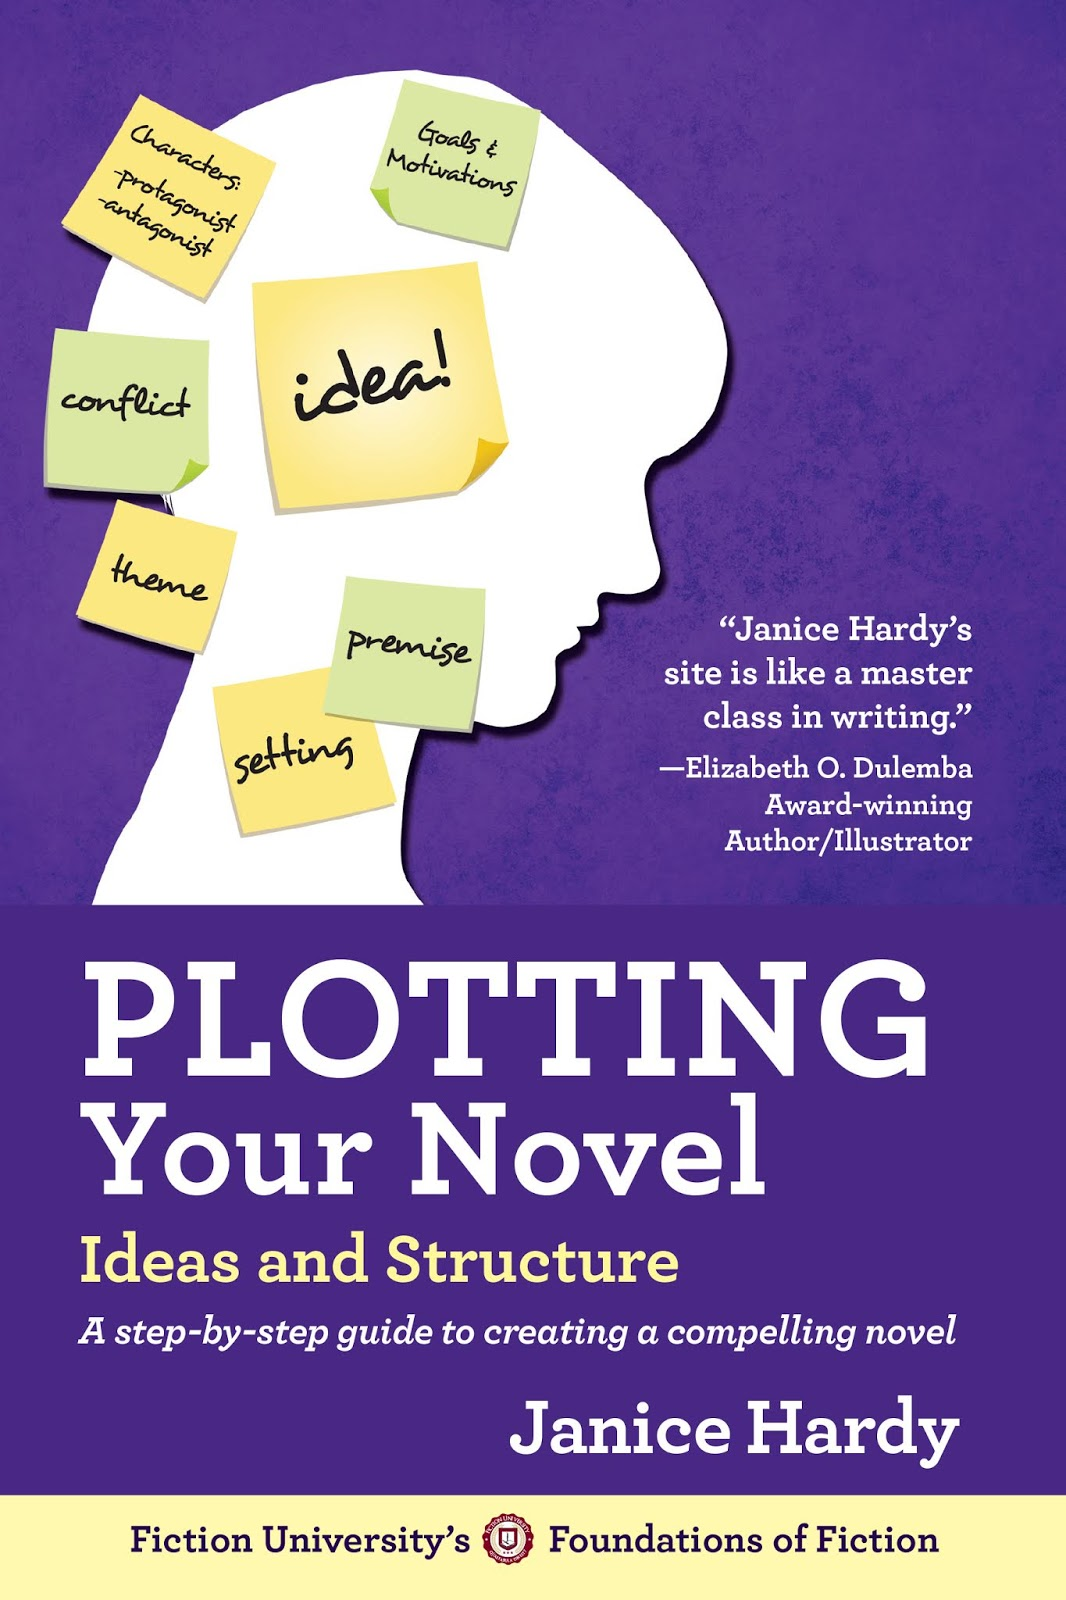 Fiction University: How Can You Tell if Your Idea is Worth Writing?